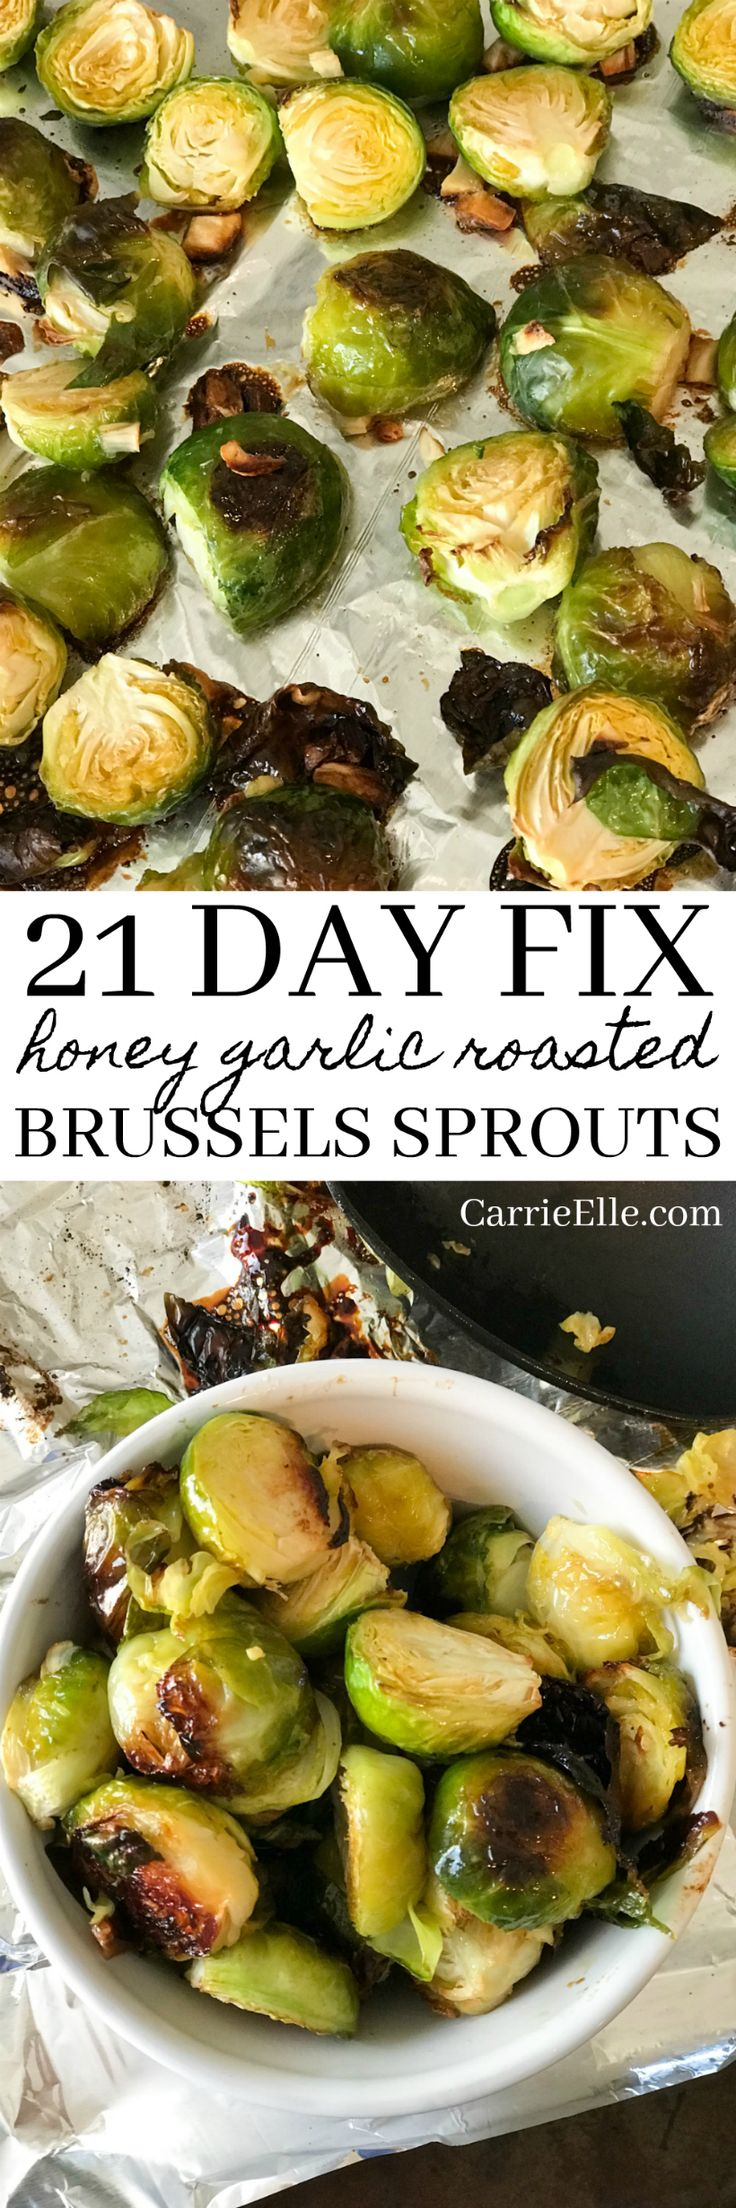 21 Day Fix Honey Garlic Roasted Brussels Sprouts